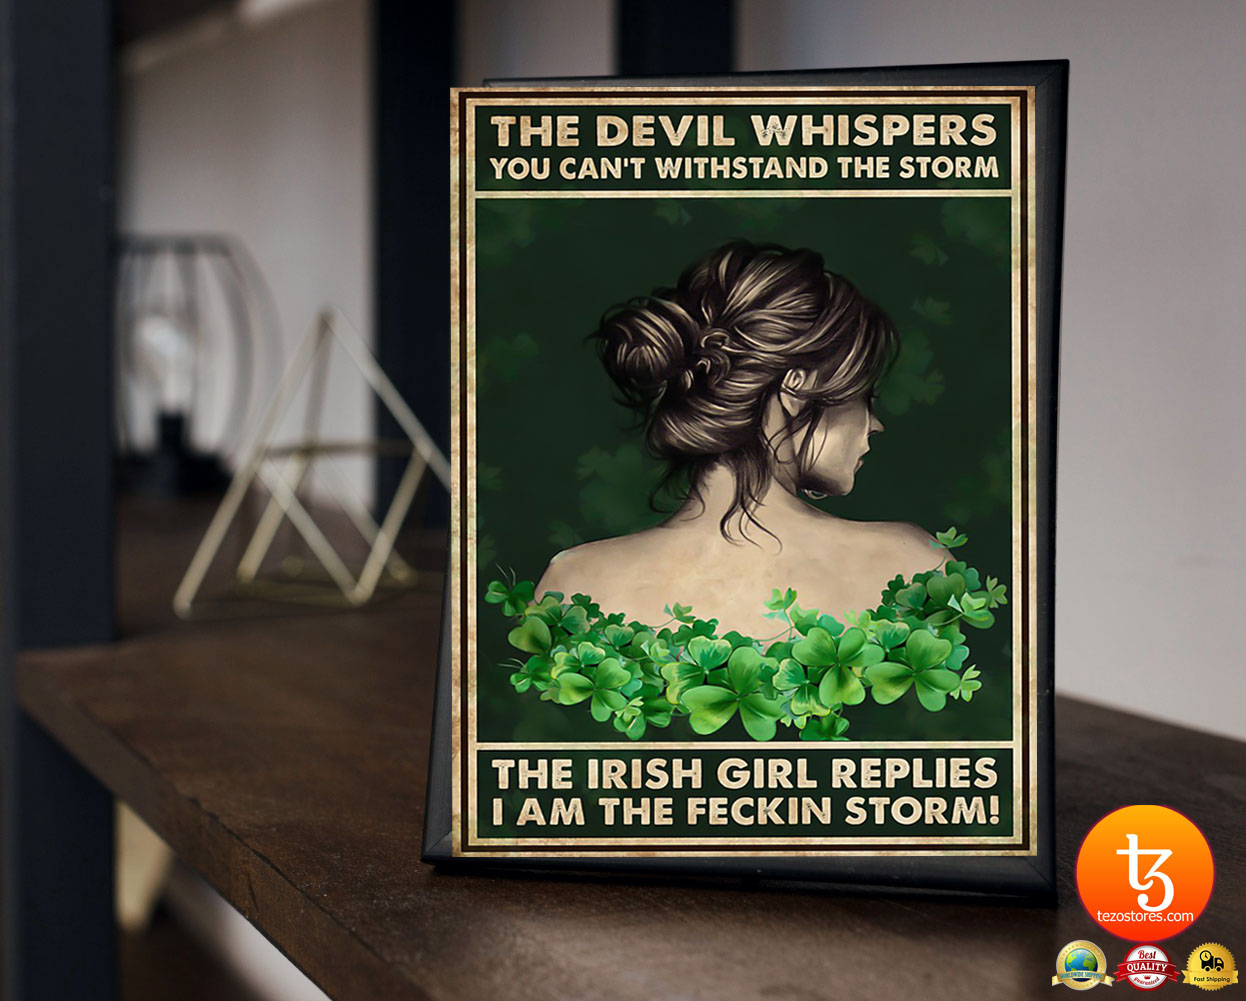 Irish girl the devil whispers you can't withstand the storm poster 19